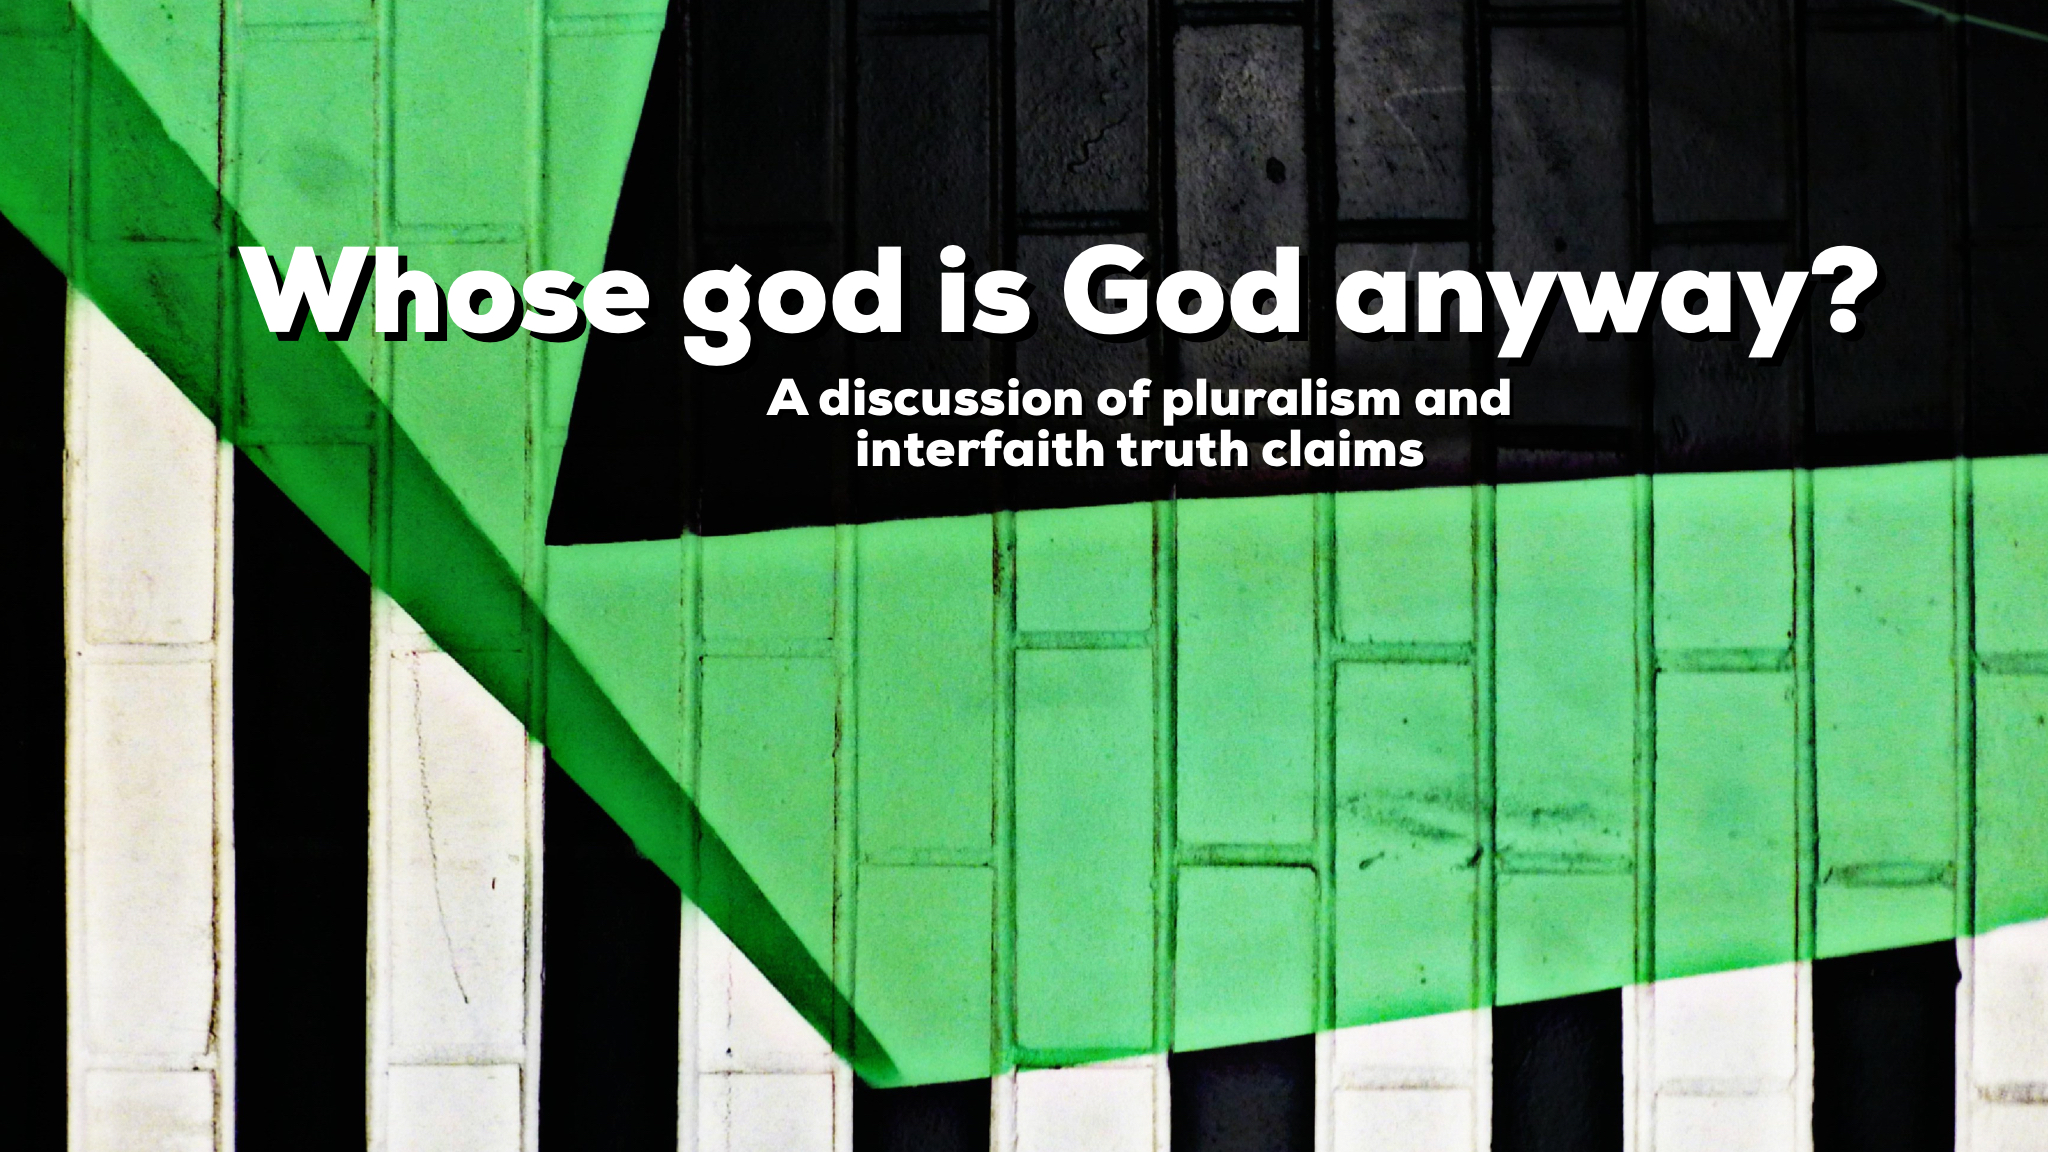 Reid and Jesse discuss contemporary religious pluralism, interfaith witness, and truth claims